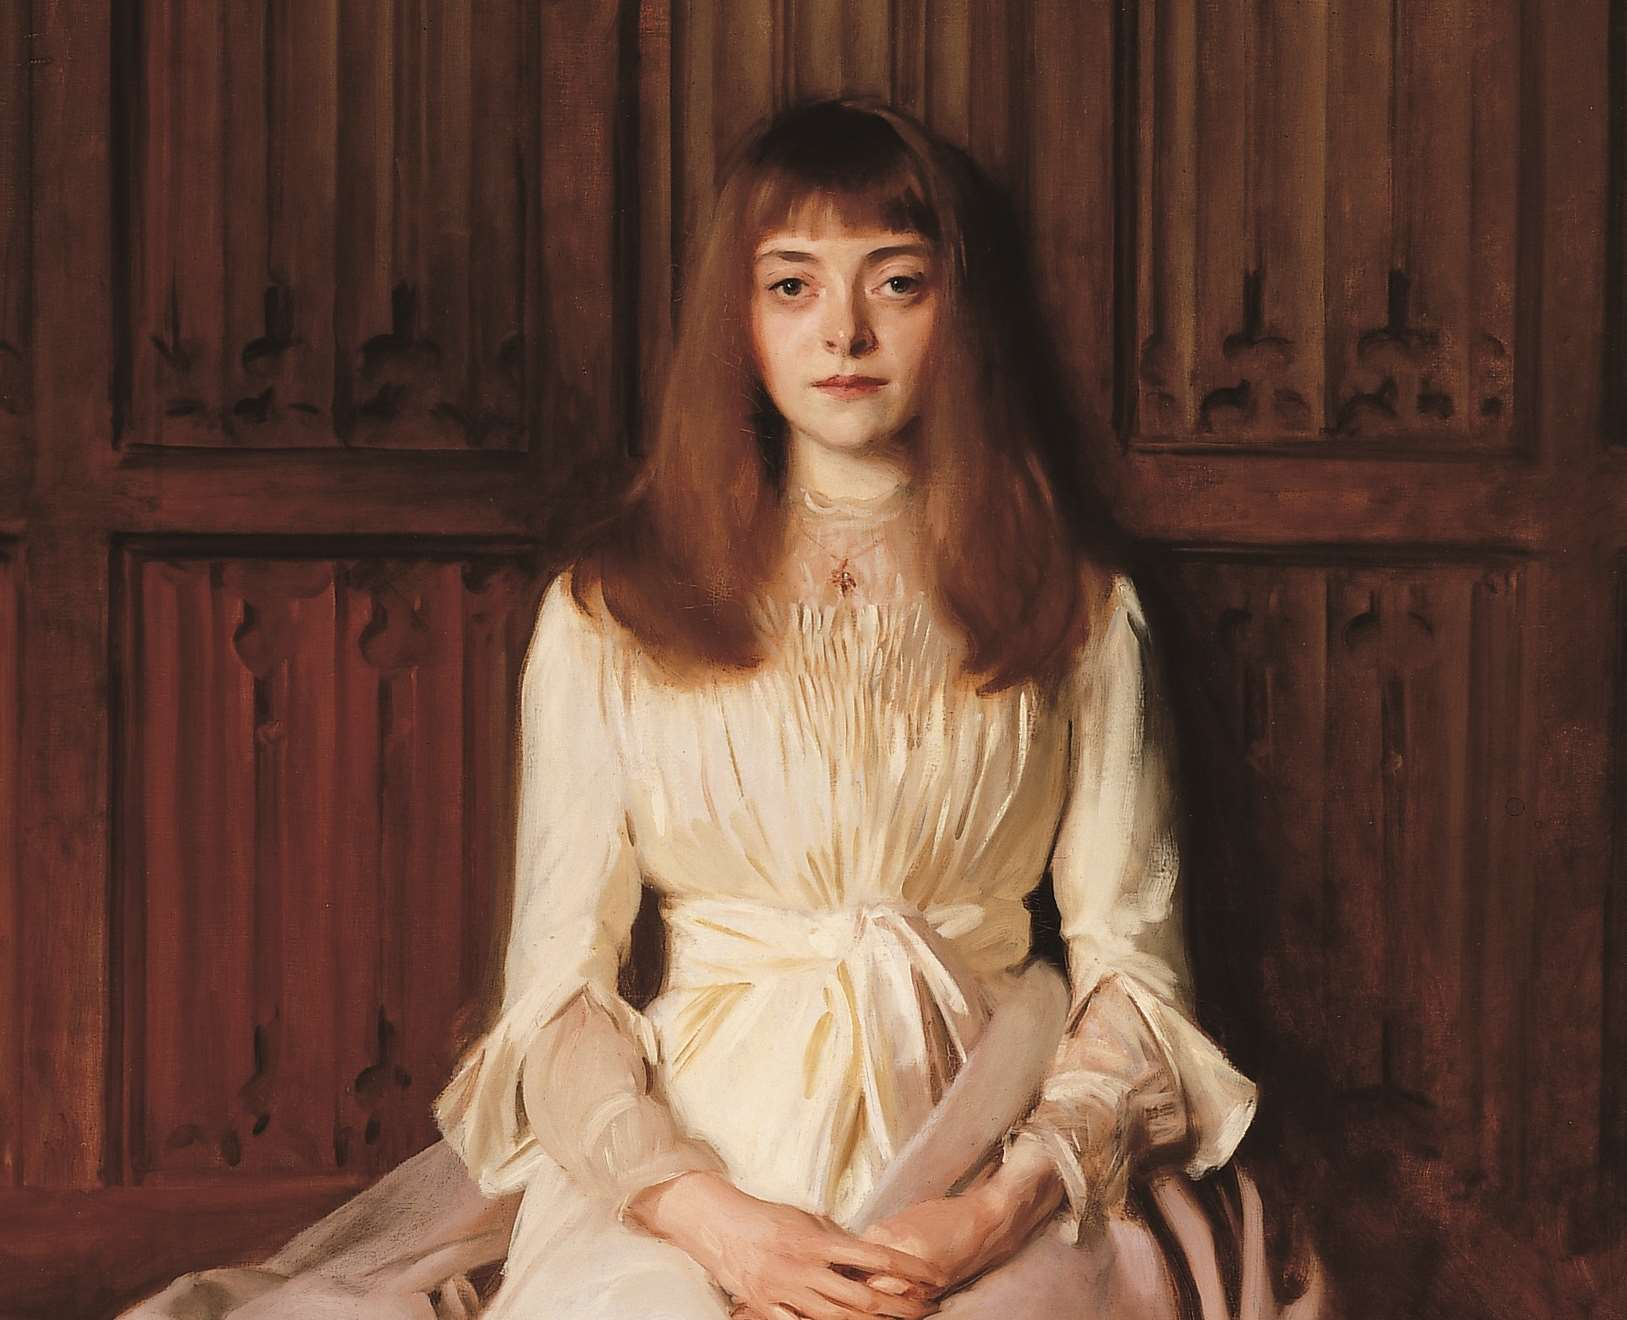 Elsie Palmer (A Young Lady in White) painted by John Singer Sargent is at Ightham Mote for a little longer